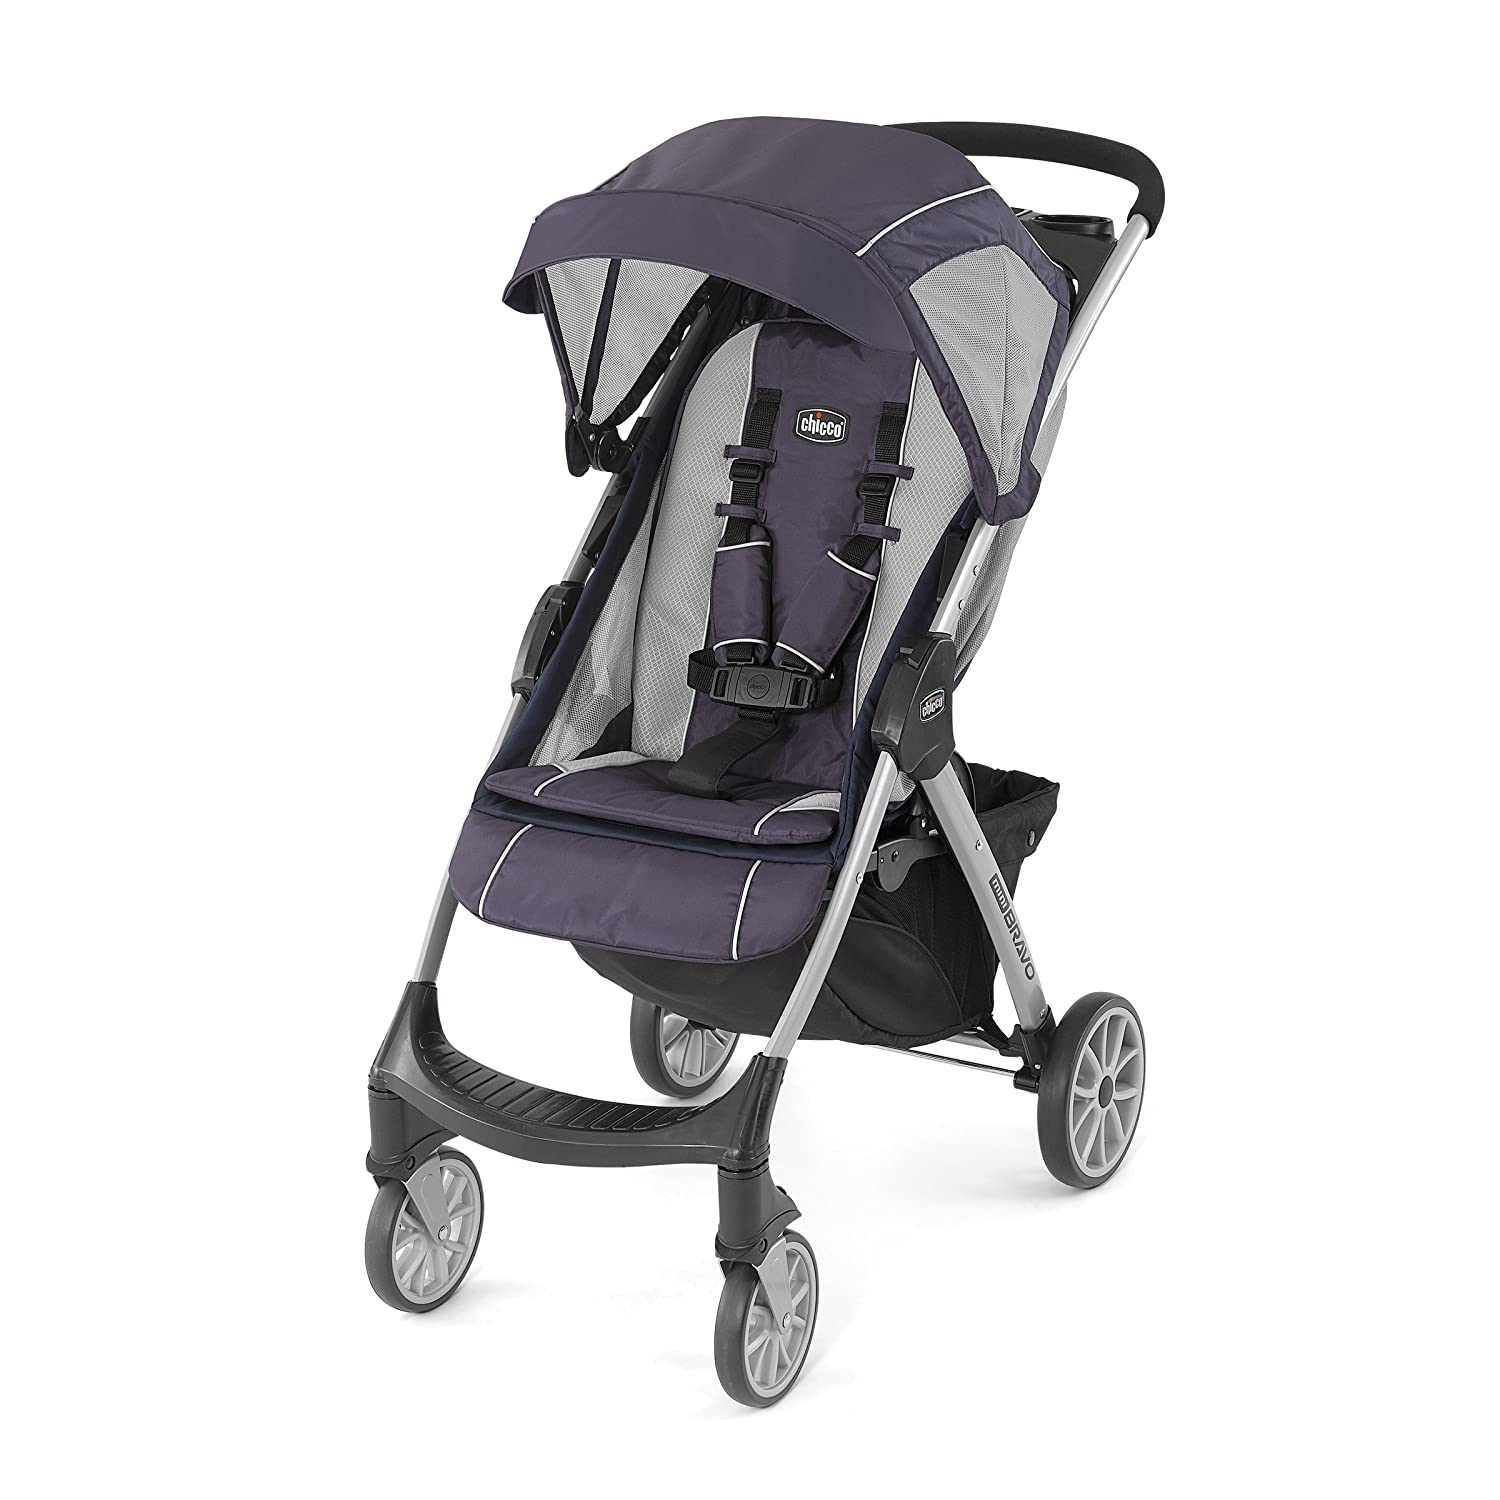 Chicco Mini Bravo Lightweight Stroller, Mulberry 07079663280070